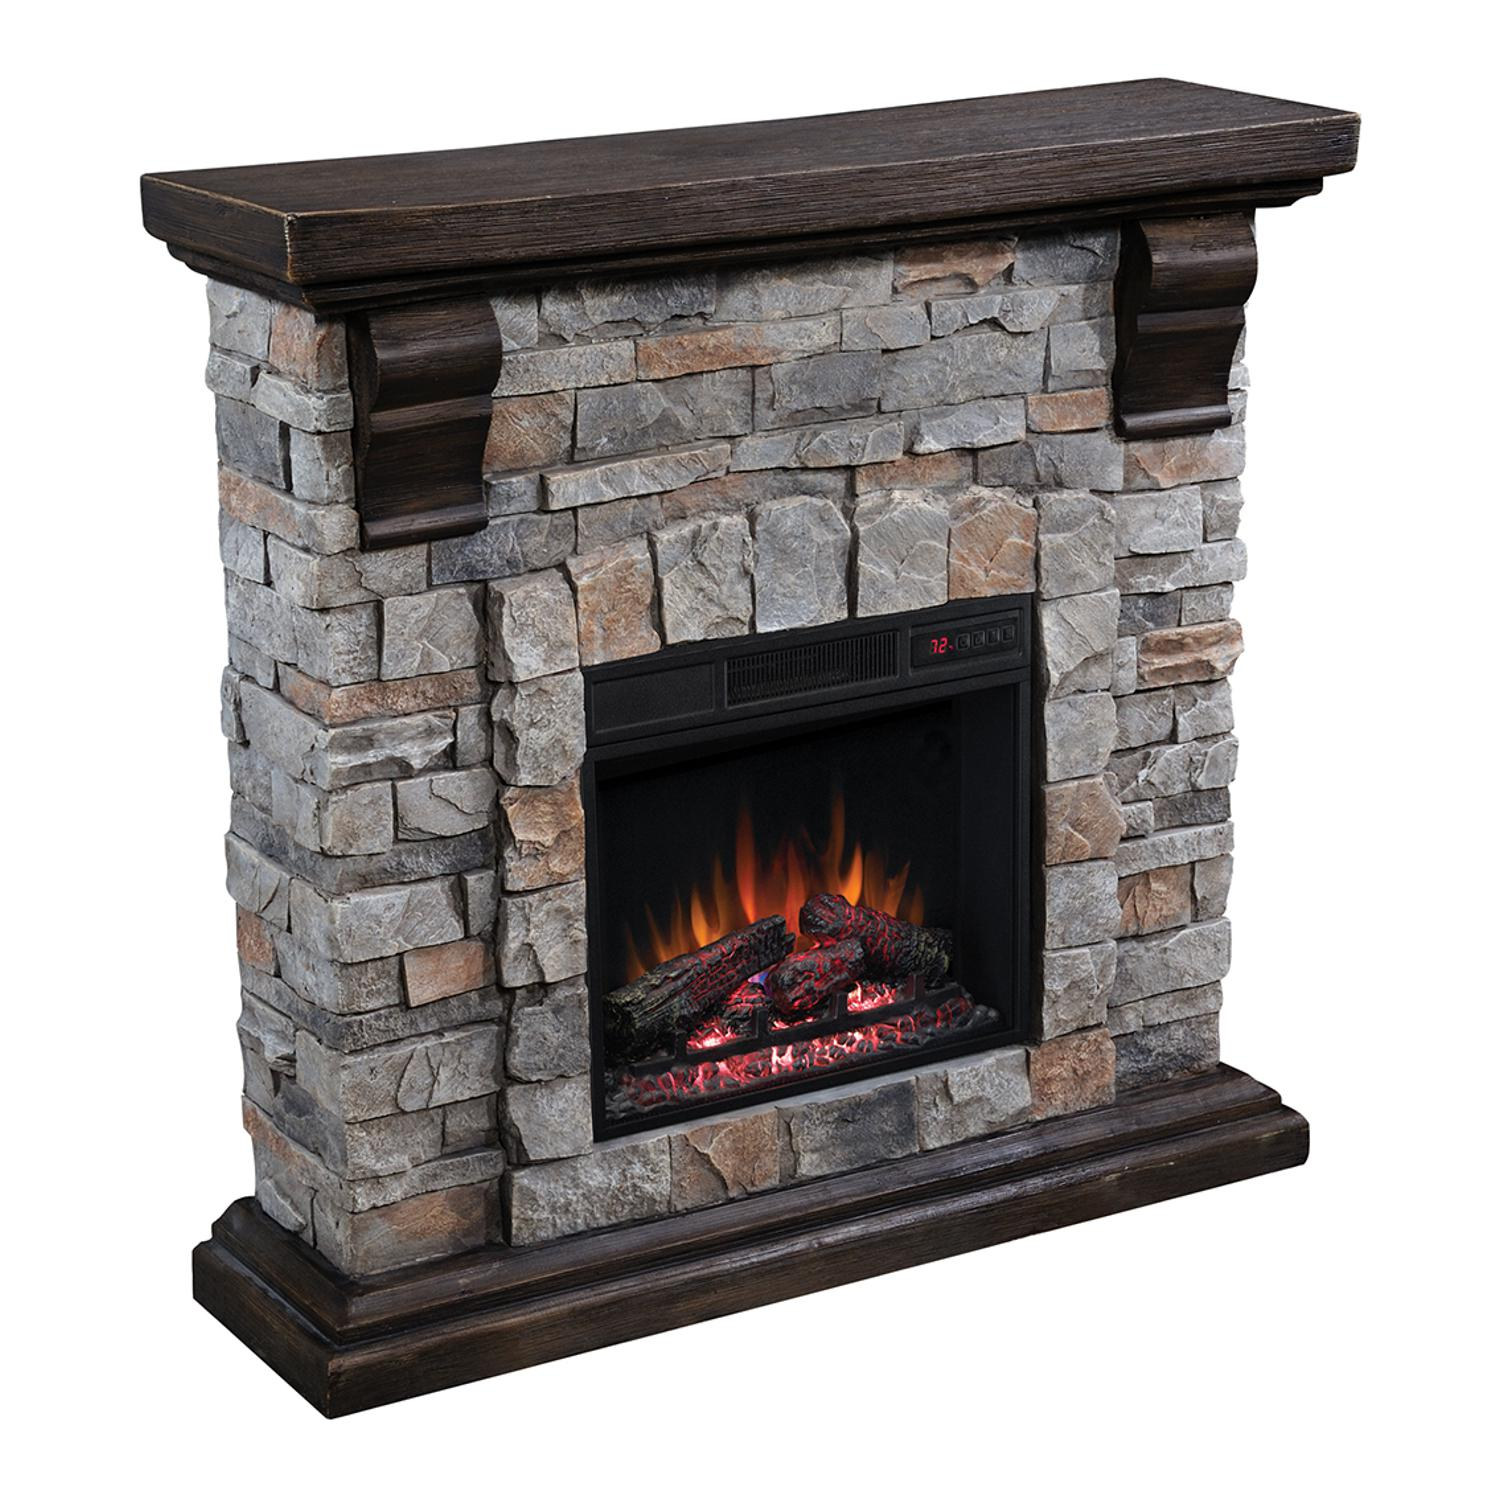 "Classicflame Pioneer 40"" Electric Fireplace Mantel Package - Brushed Dark Pine - 90679f"